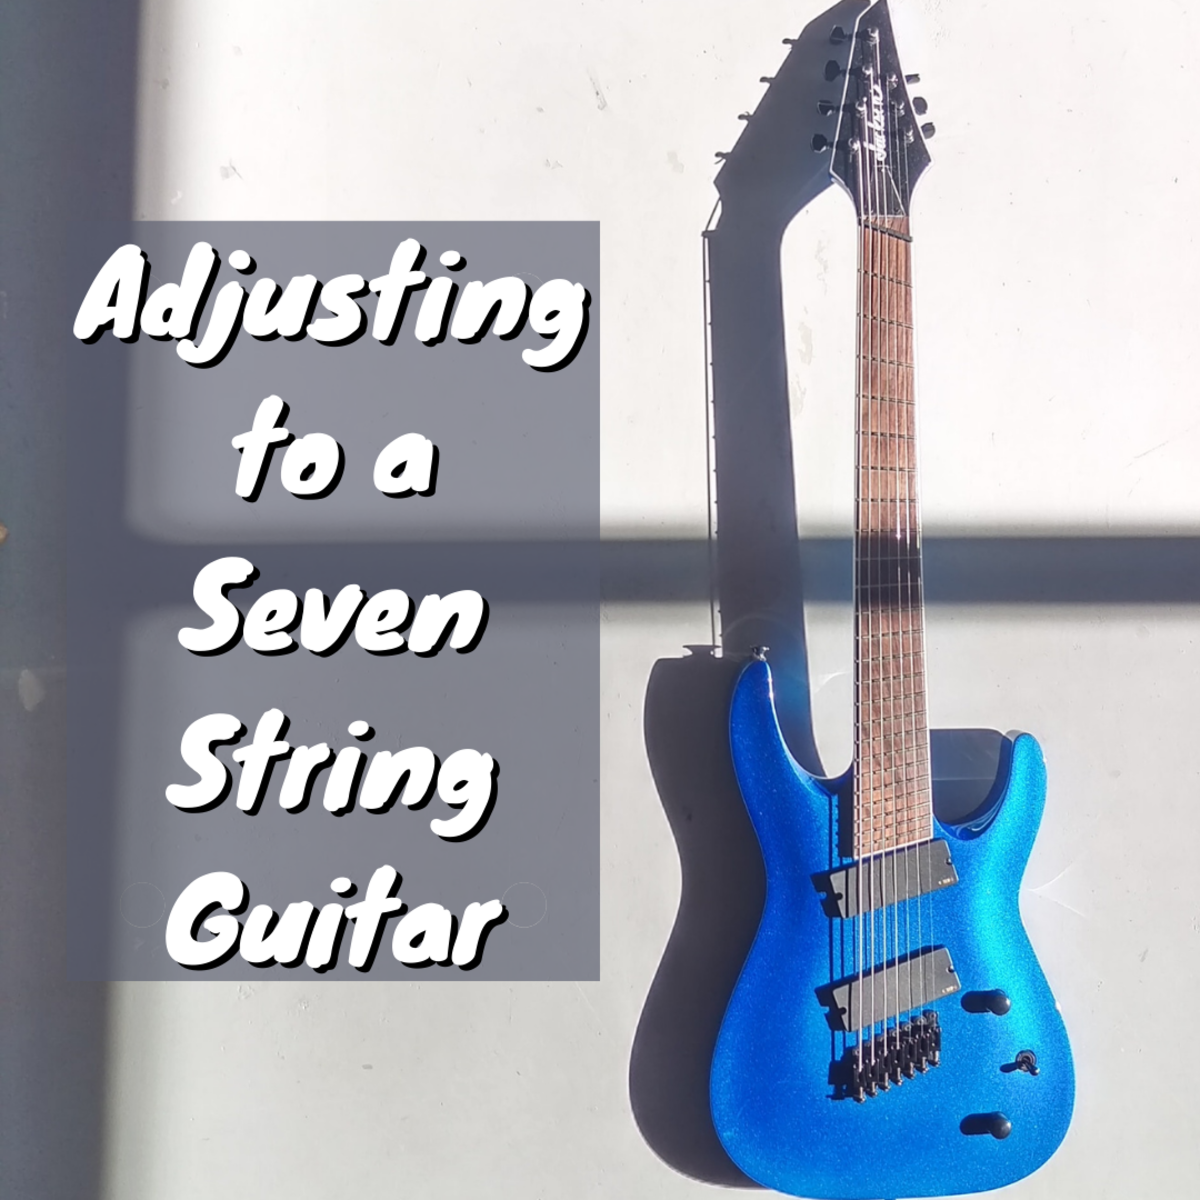 Read on to learn a number of tips for adjusting to 7-string guitar.